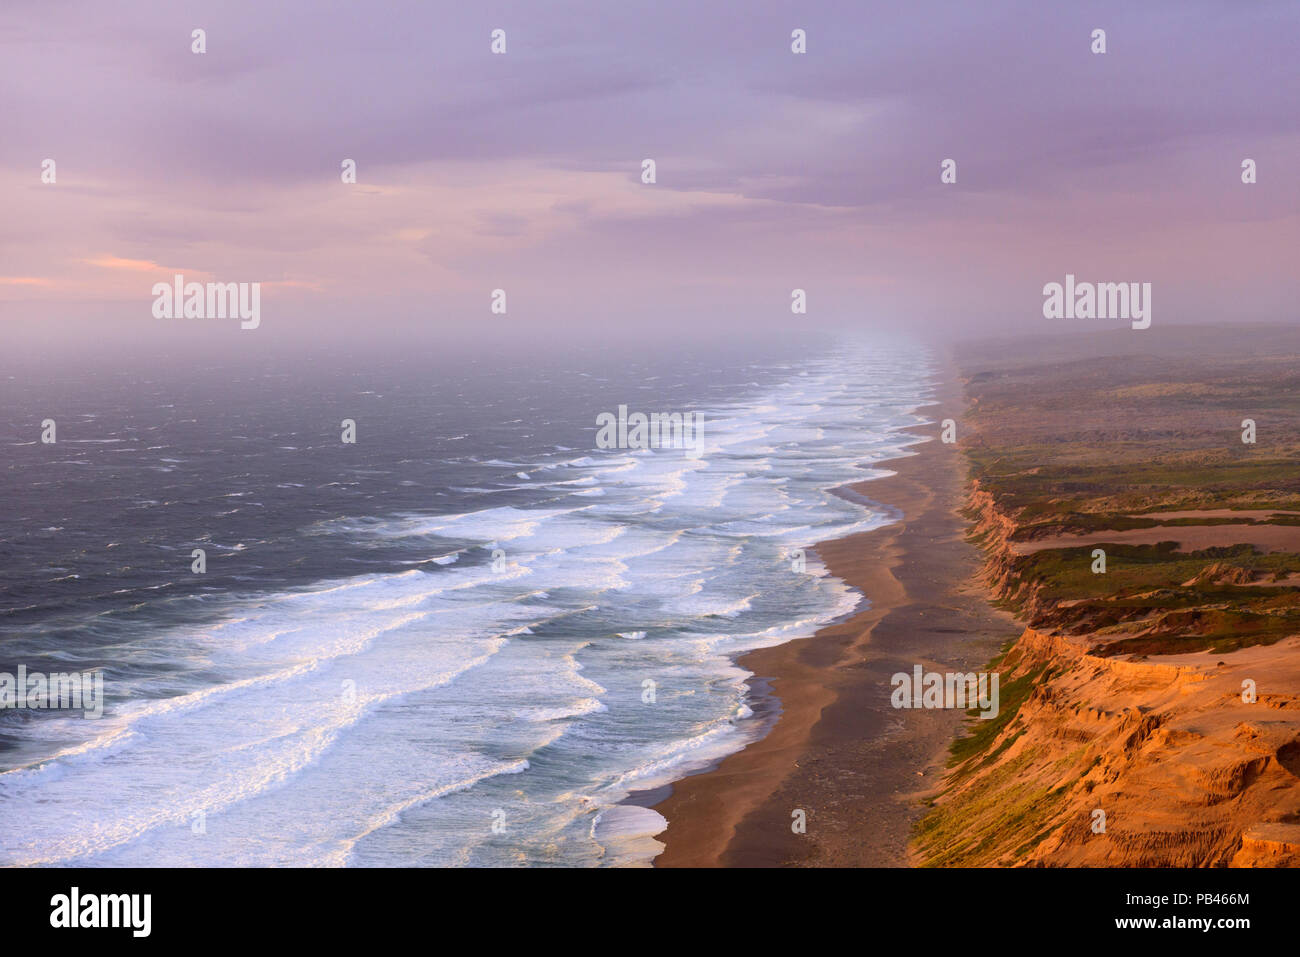 Sunset on the 11 mile long point Reyes Beach in the Point Reyes National Seashore 50 miles north of San Francisco, California. - Stock Image